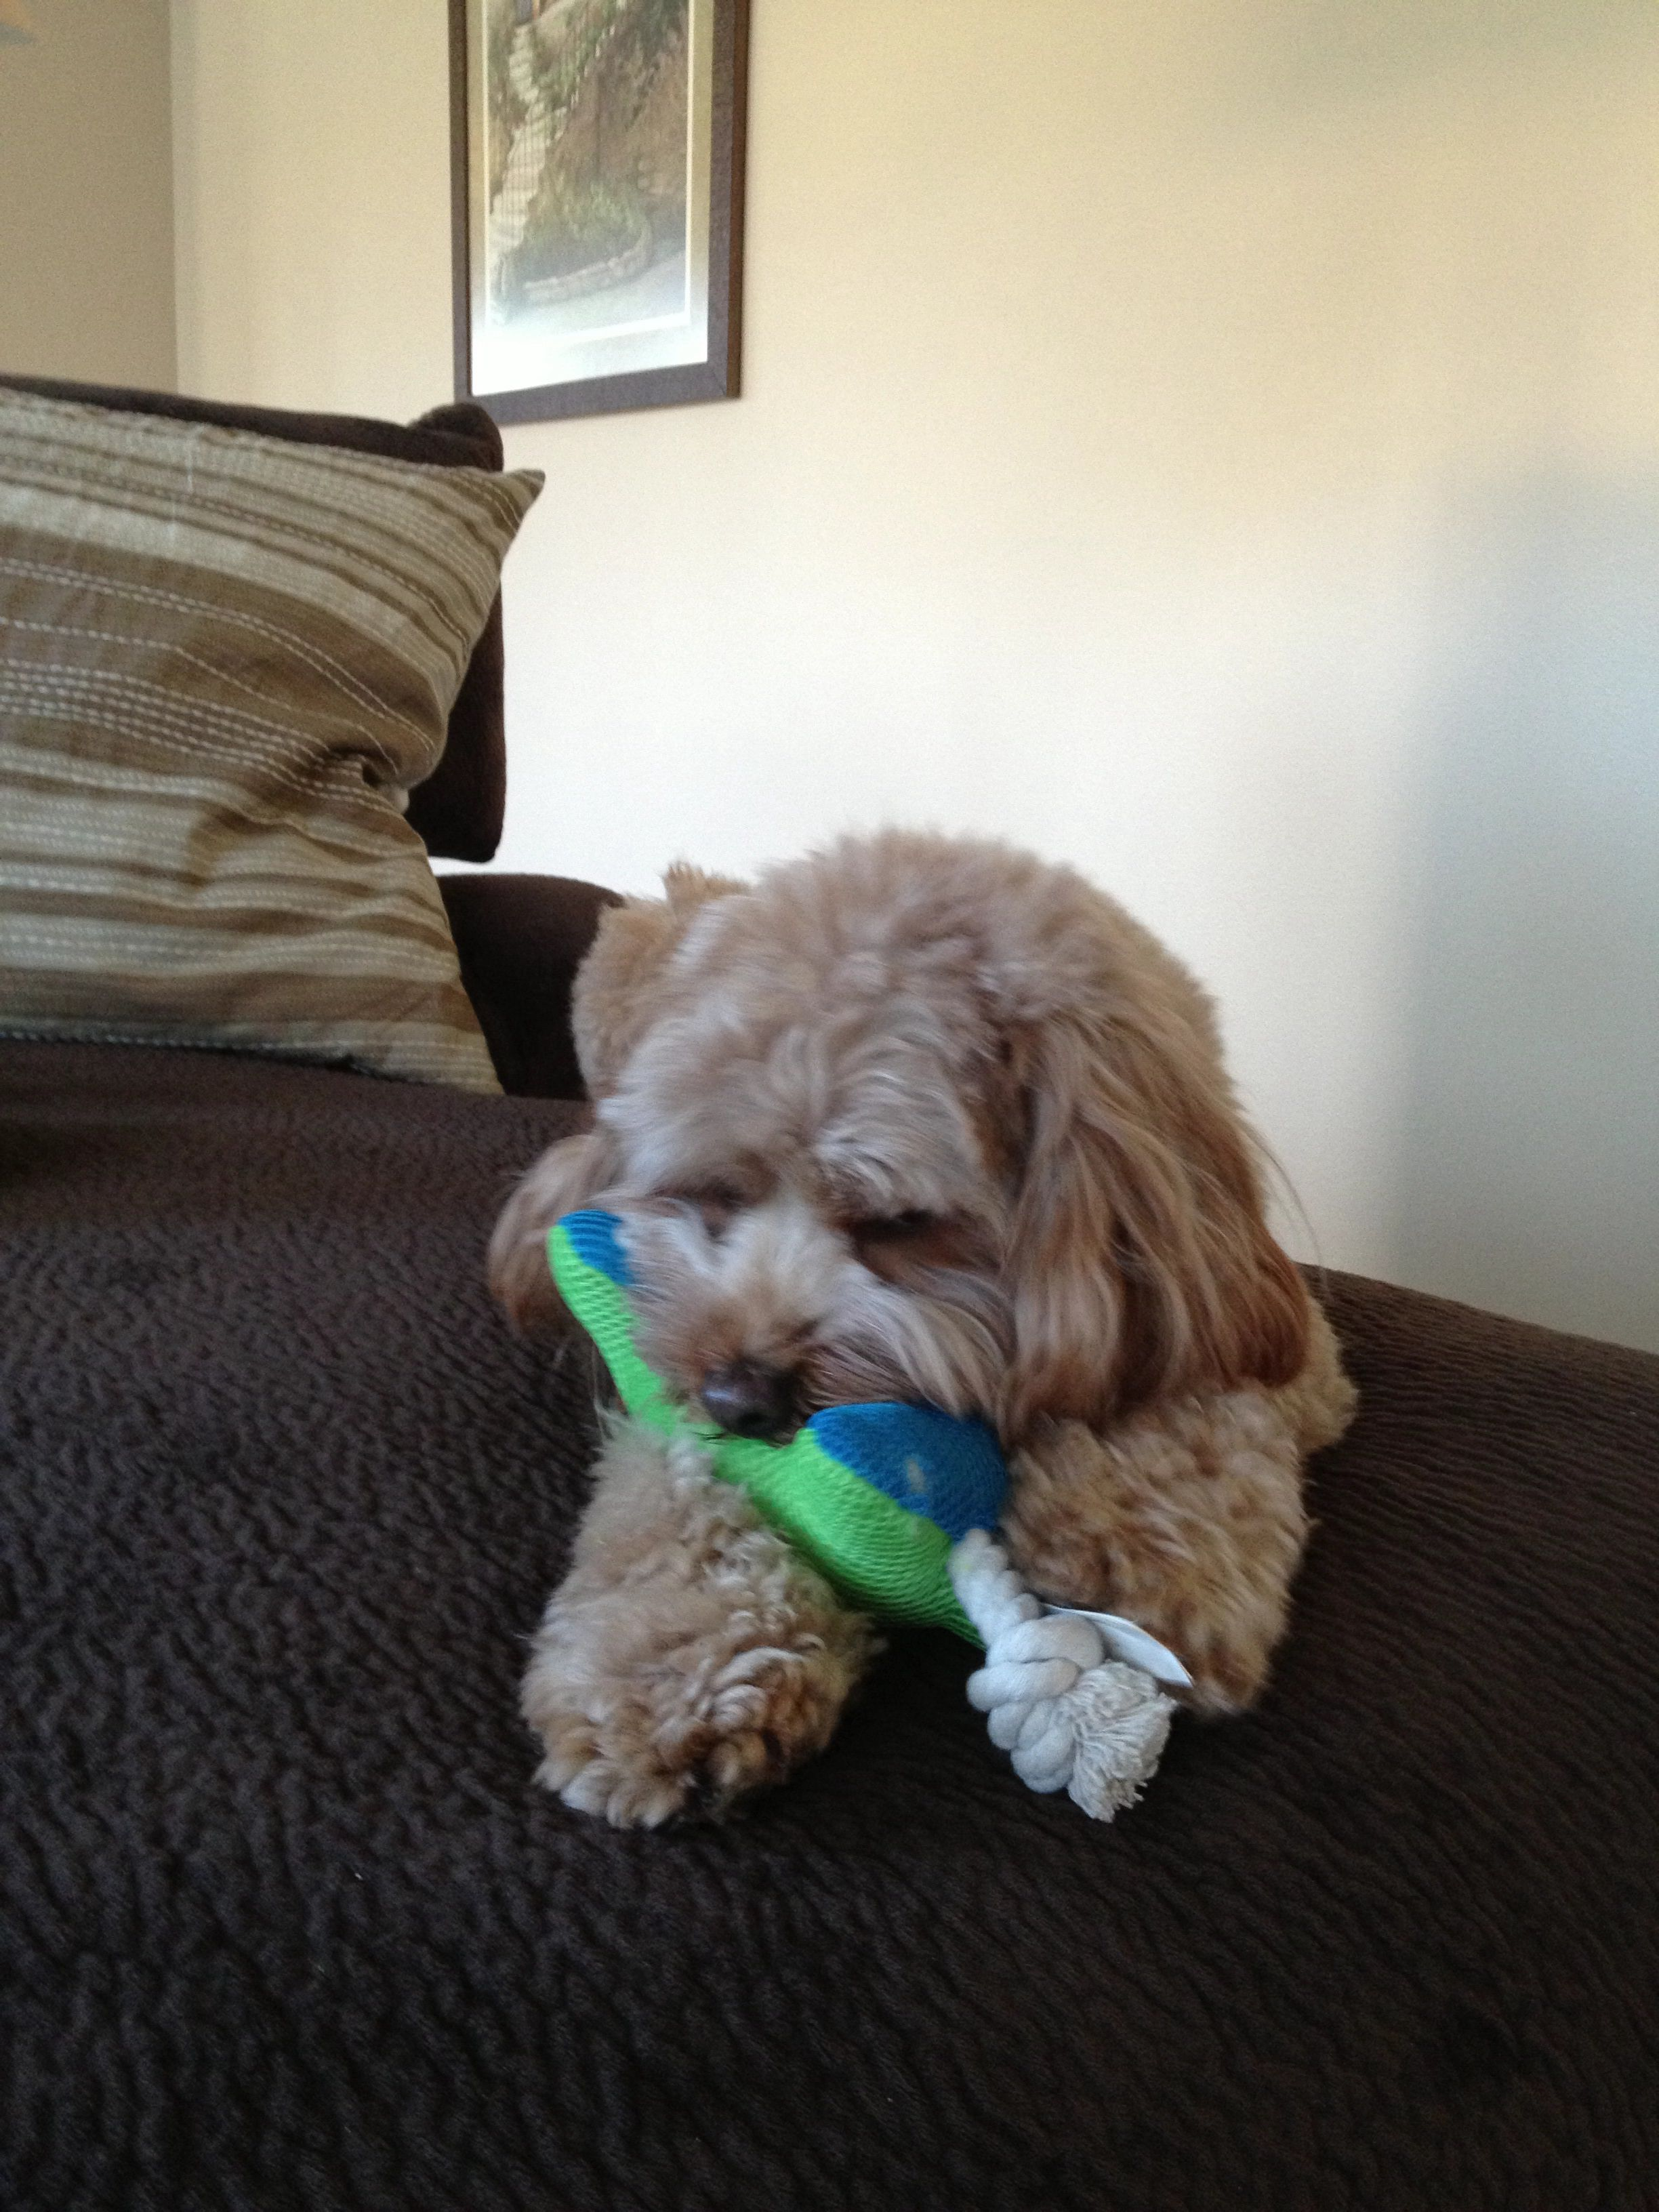 Playing with his bone